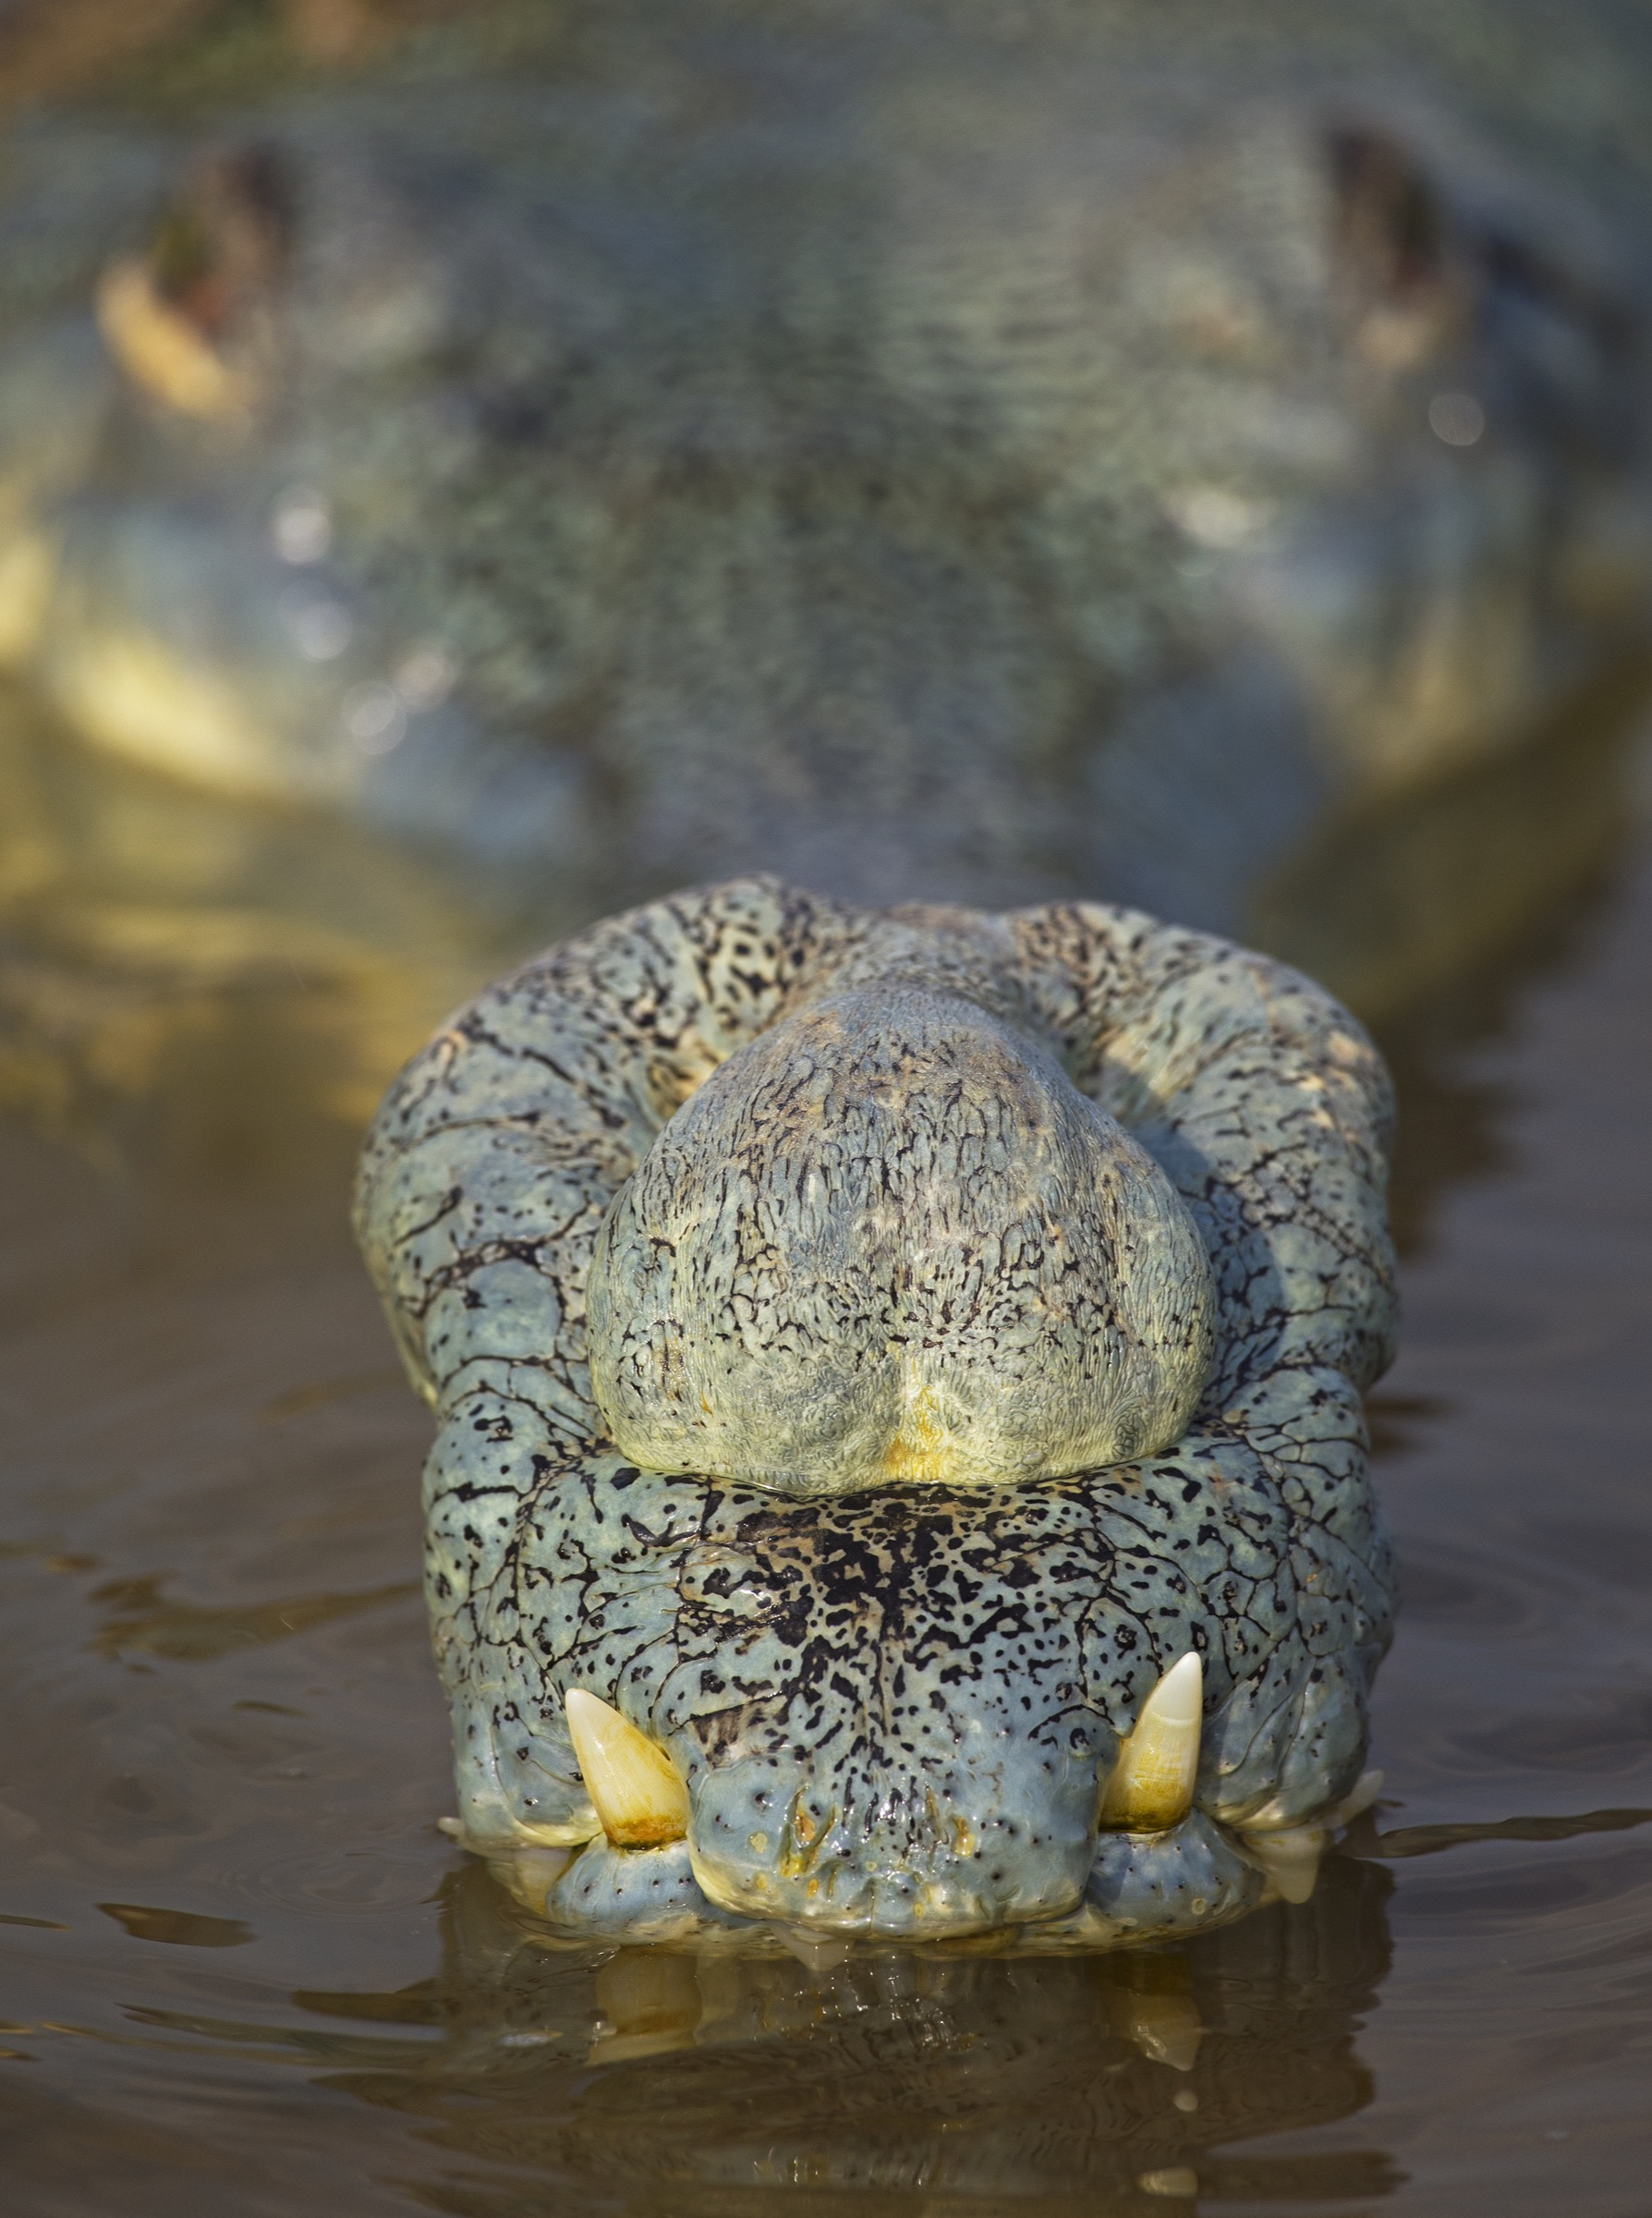 The gharial is named after the ghara, the bulbous lump that forms on snouts of adult males. These structures are thought to help amplify the hissing and underwater popping sounds that males make in defense of their territories.